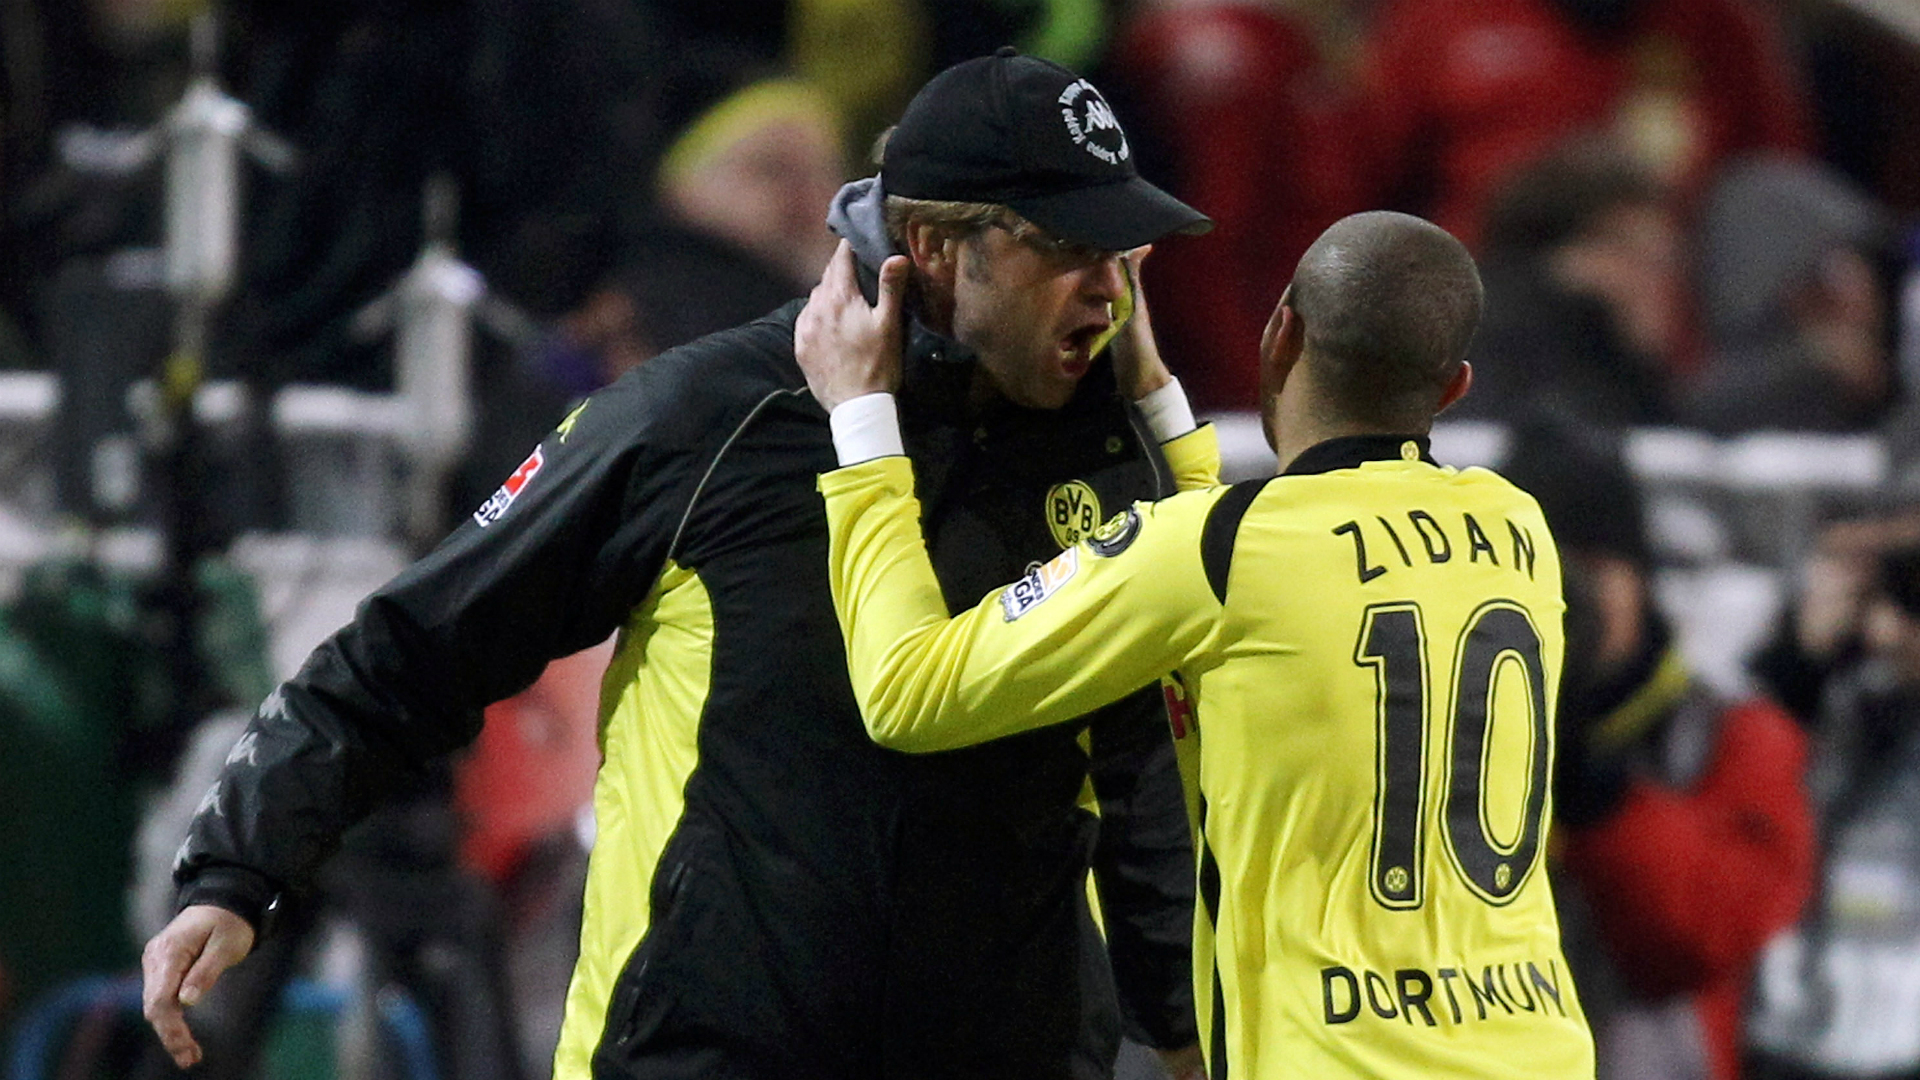 'I could have achieved more than Salah' - Ex-Dortmund & Egypt star Zidan rues injury-filled career